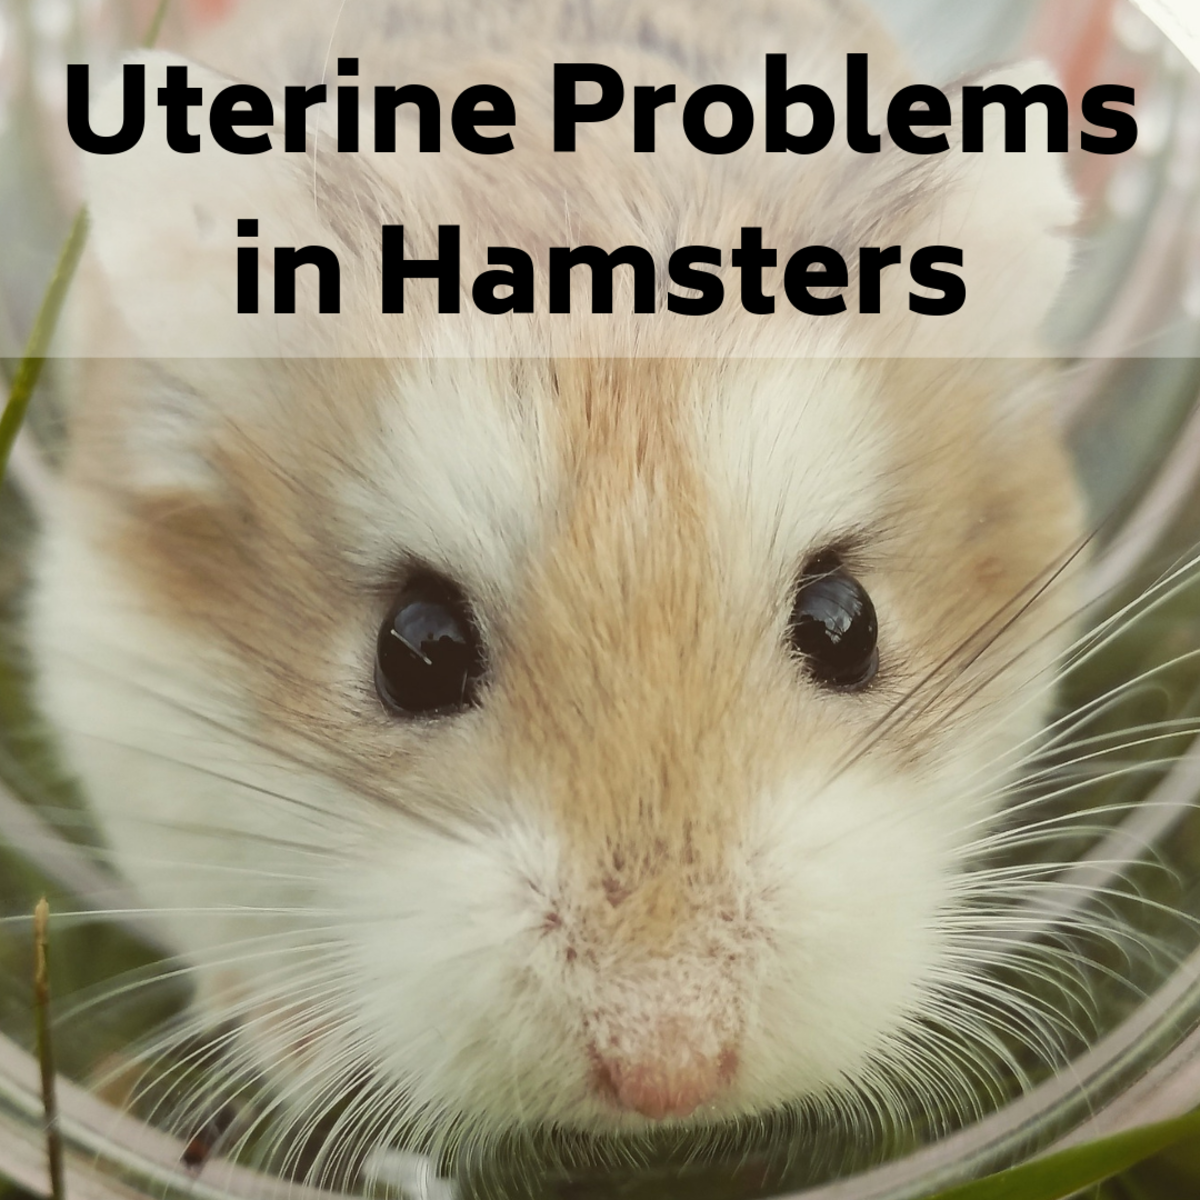 Uterine Problems in Hamsters: Signs, Symptoms, Treatment and Outlook